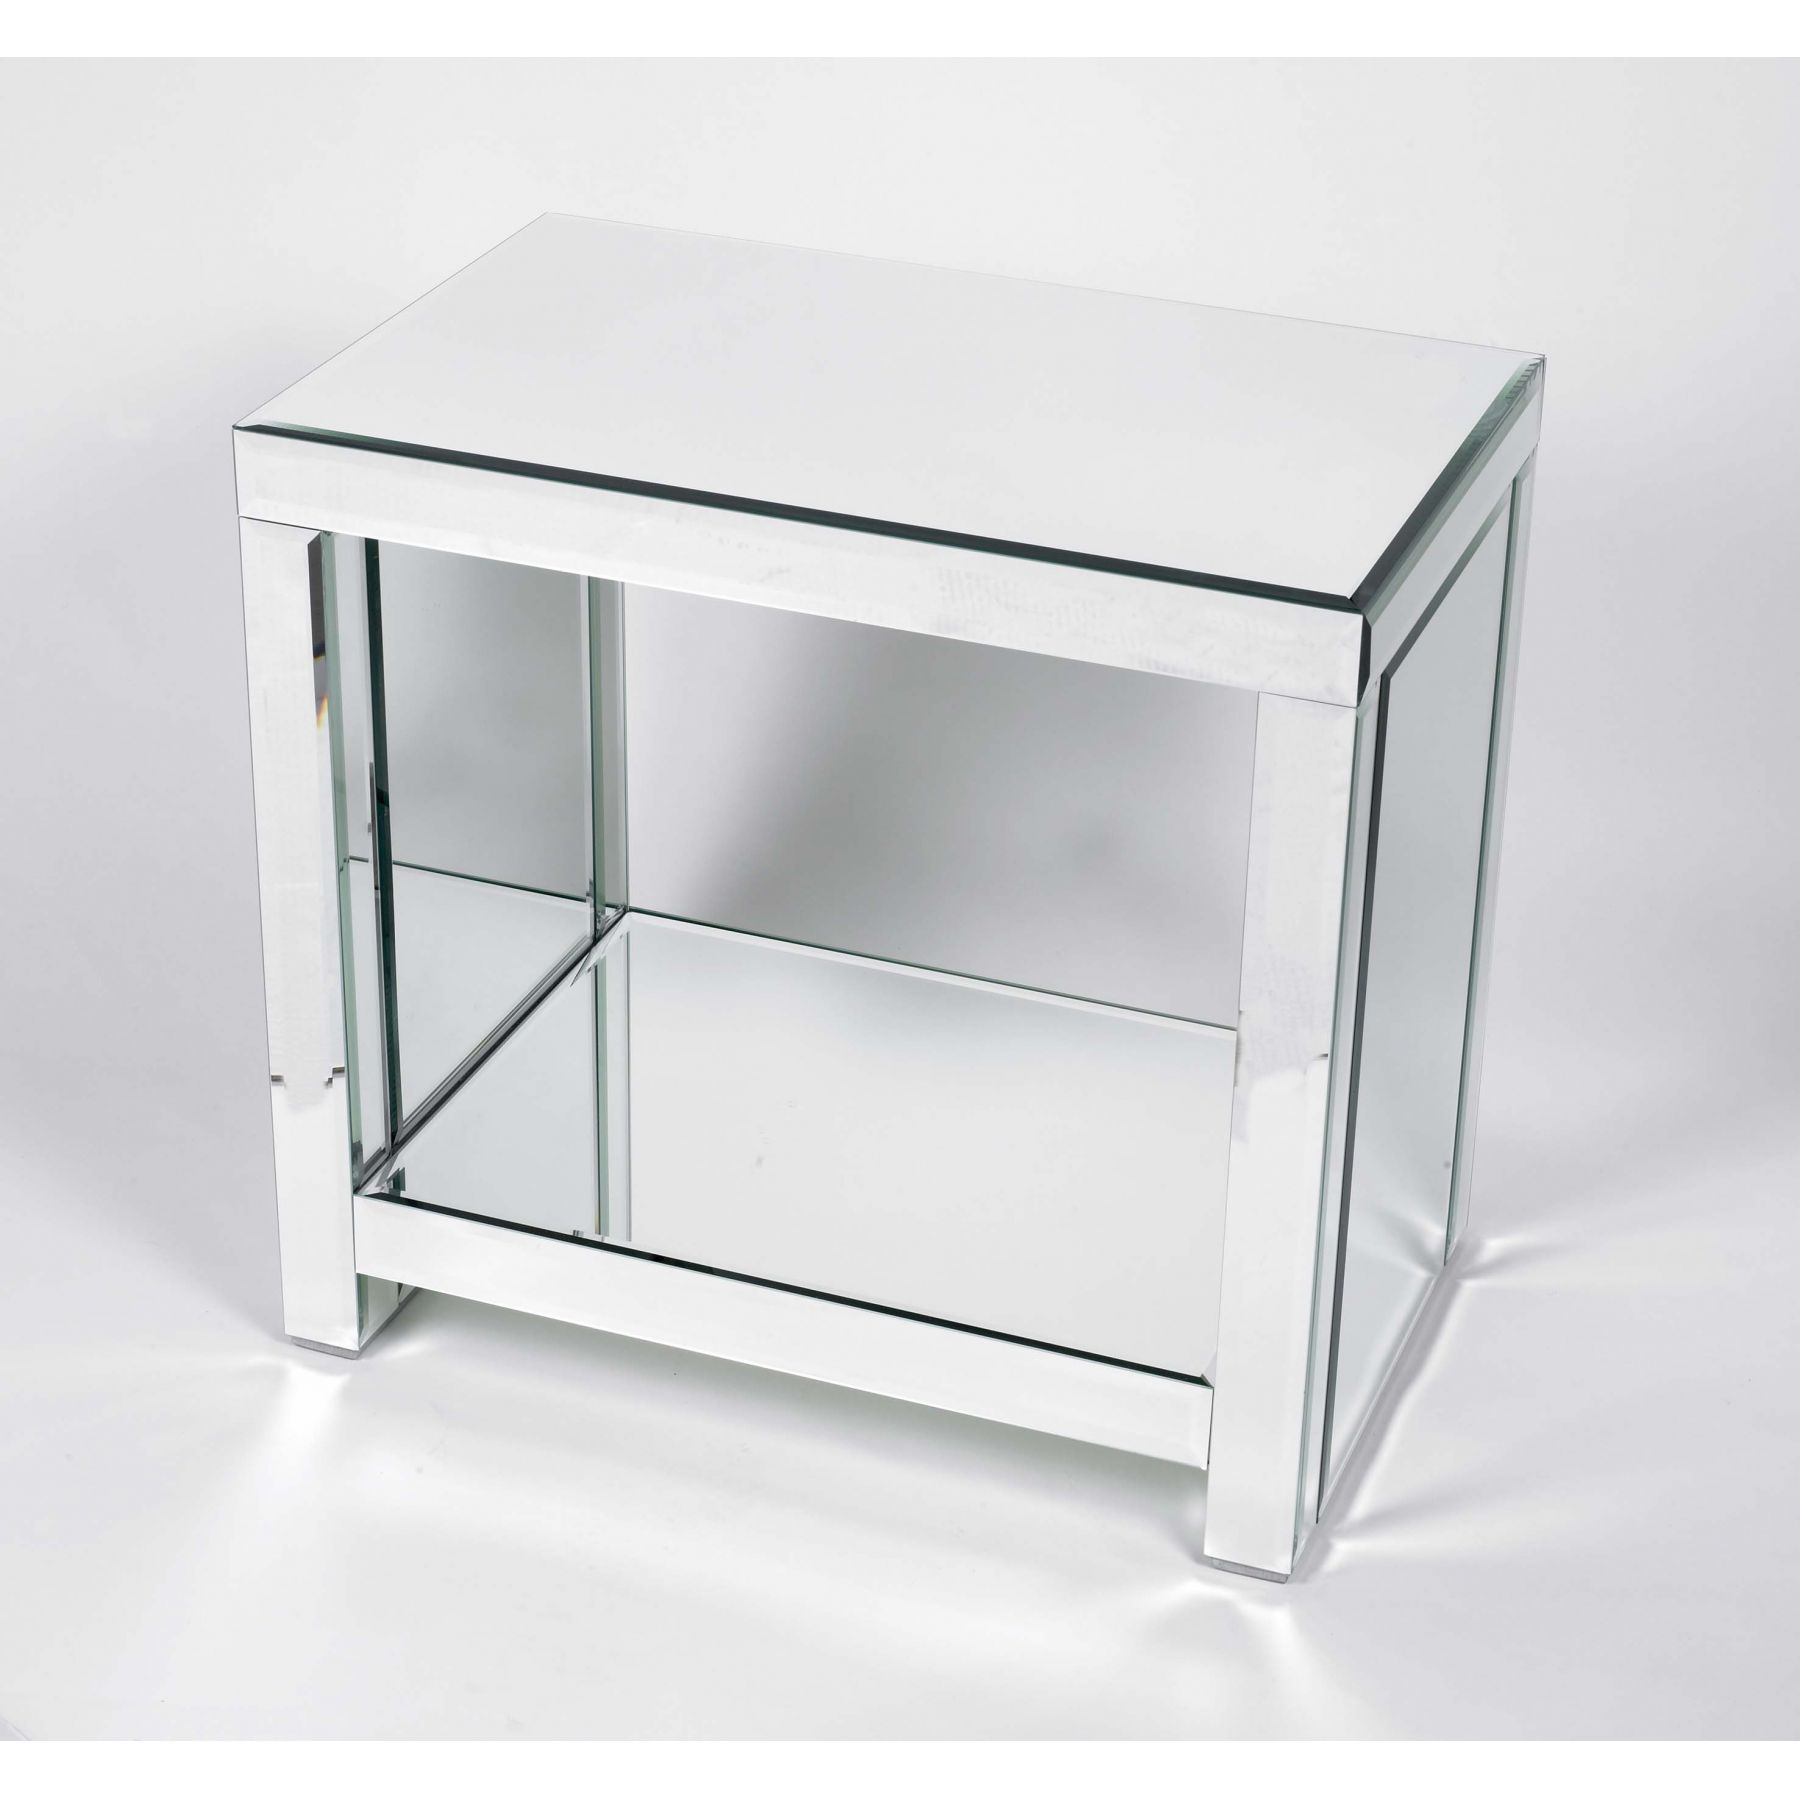 end table the outrageous unbelievable target tables free mirrored side mirrors bedside with drawers latest coffee pedestal ivory marble and amyvanmeterevents small stand set large